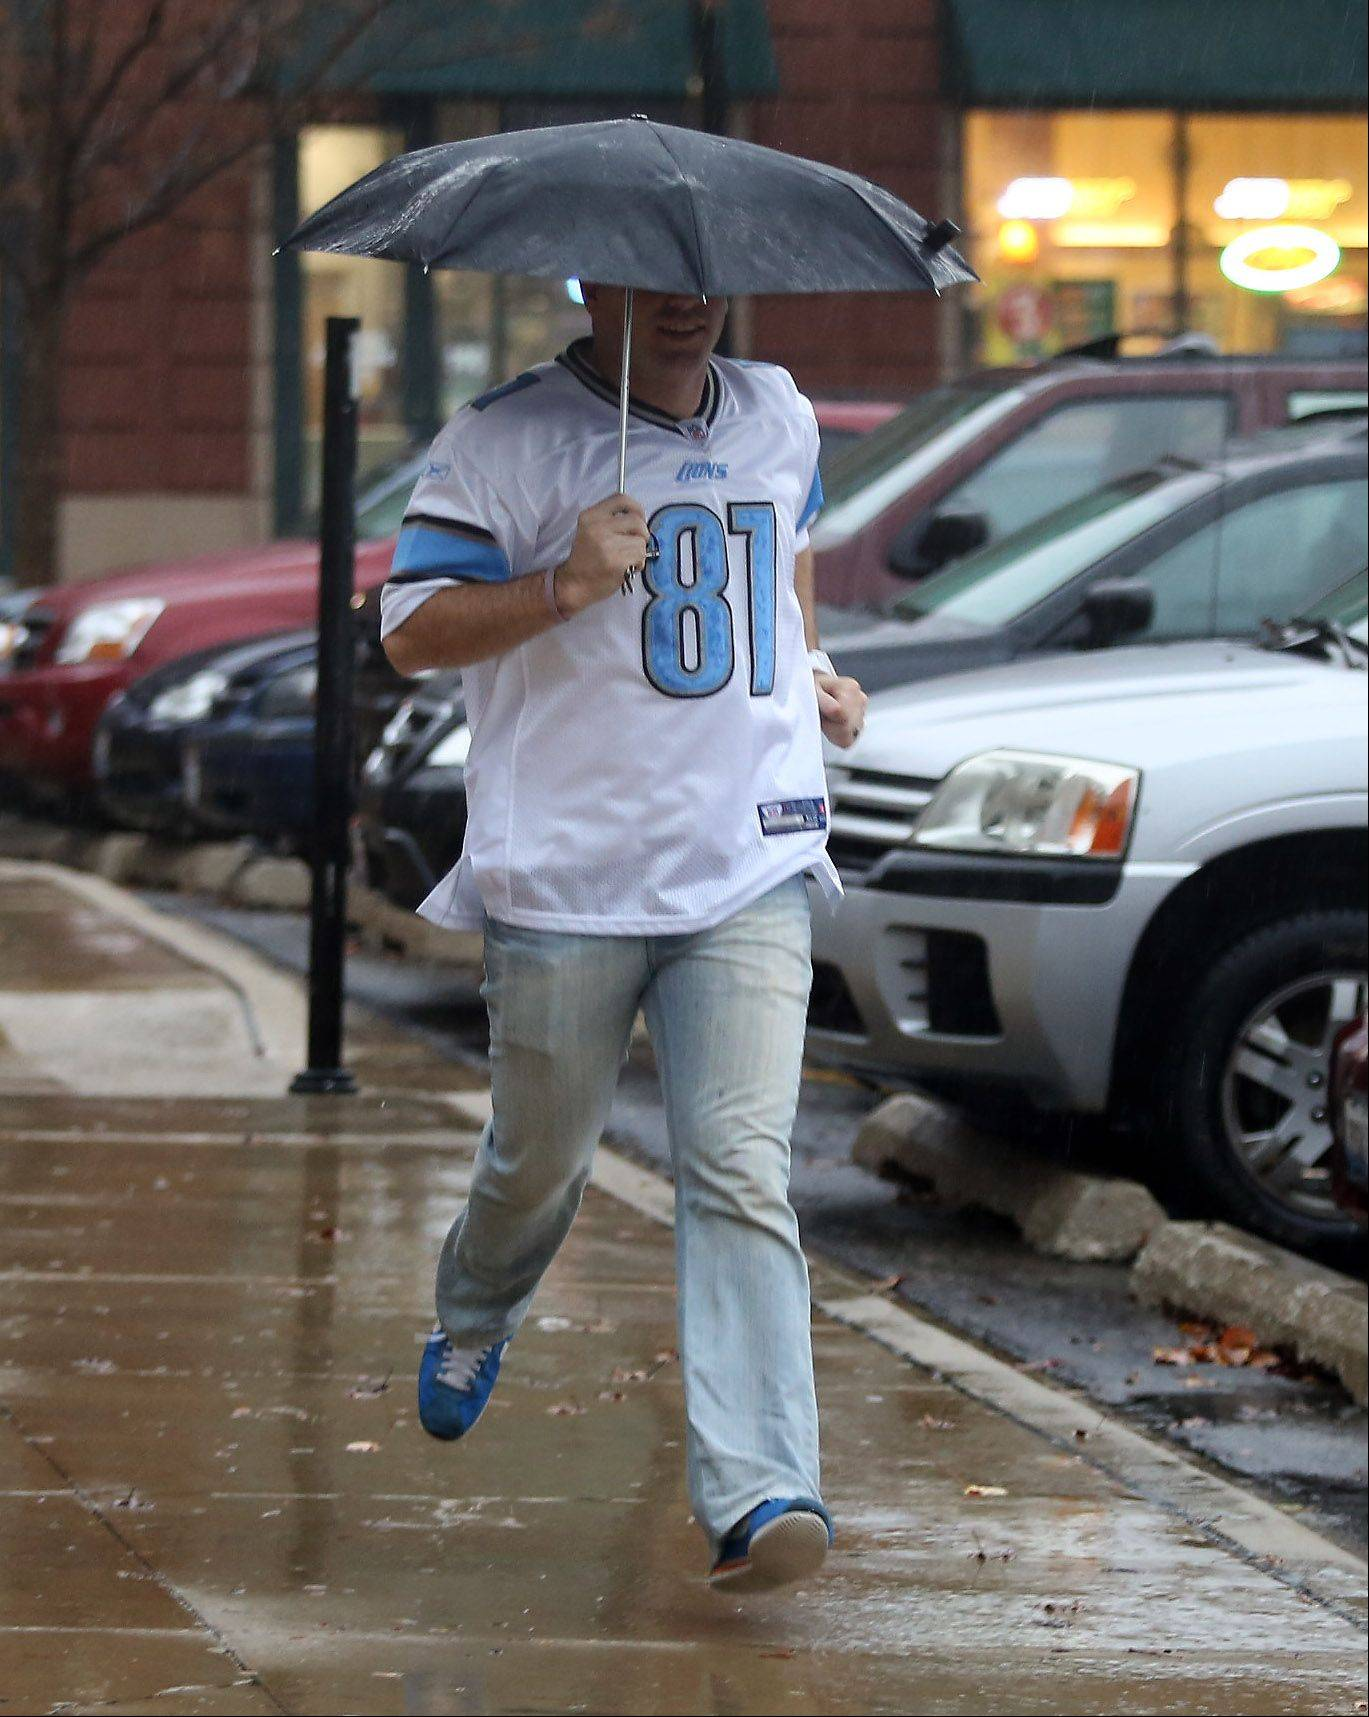 Tom Beebe of Palatine rushes to get out of the rain in downtown Palatine as strong storms affected Chicago and the suburban area Sunday causing streets to flood and tornadoes to form south of Chicago. The Chicago Bears game at Soldier Field was delayed until the storms passed.